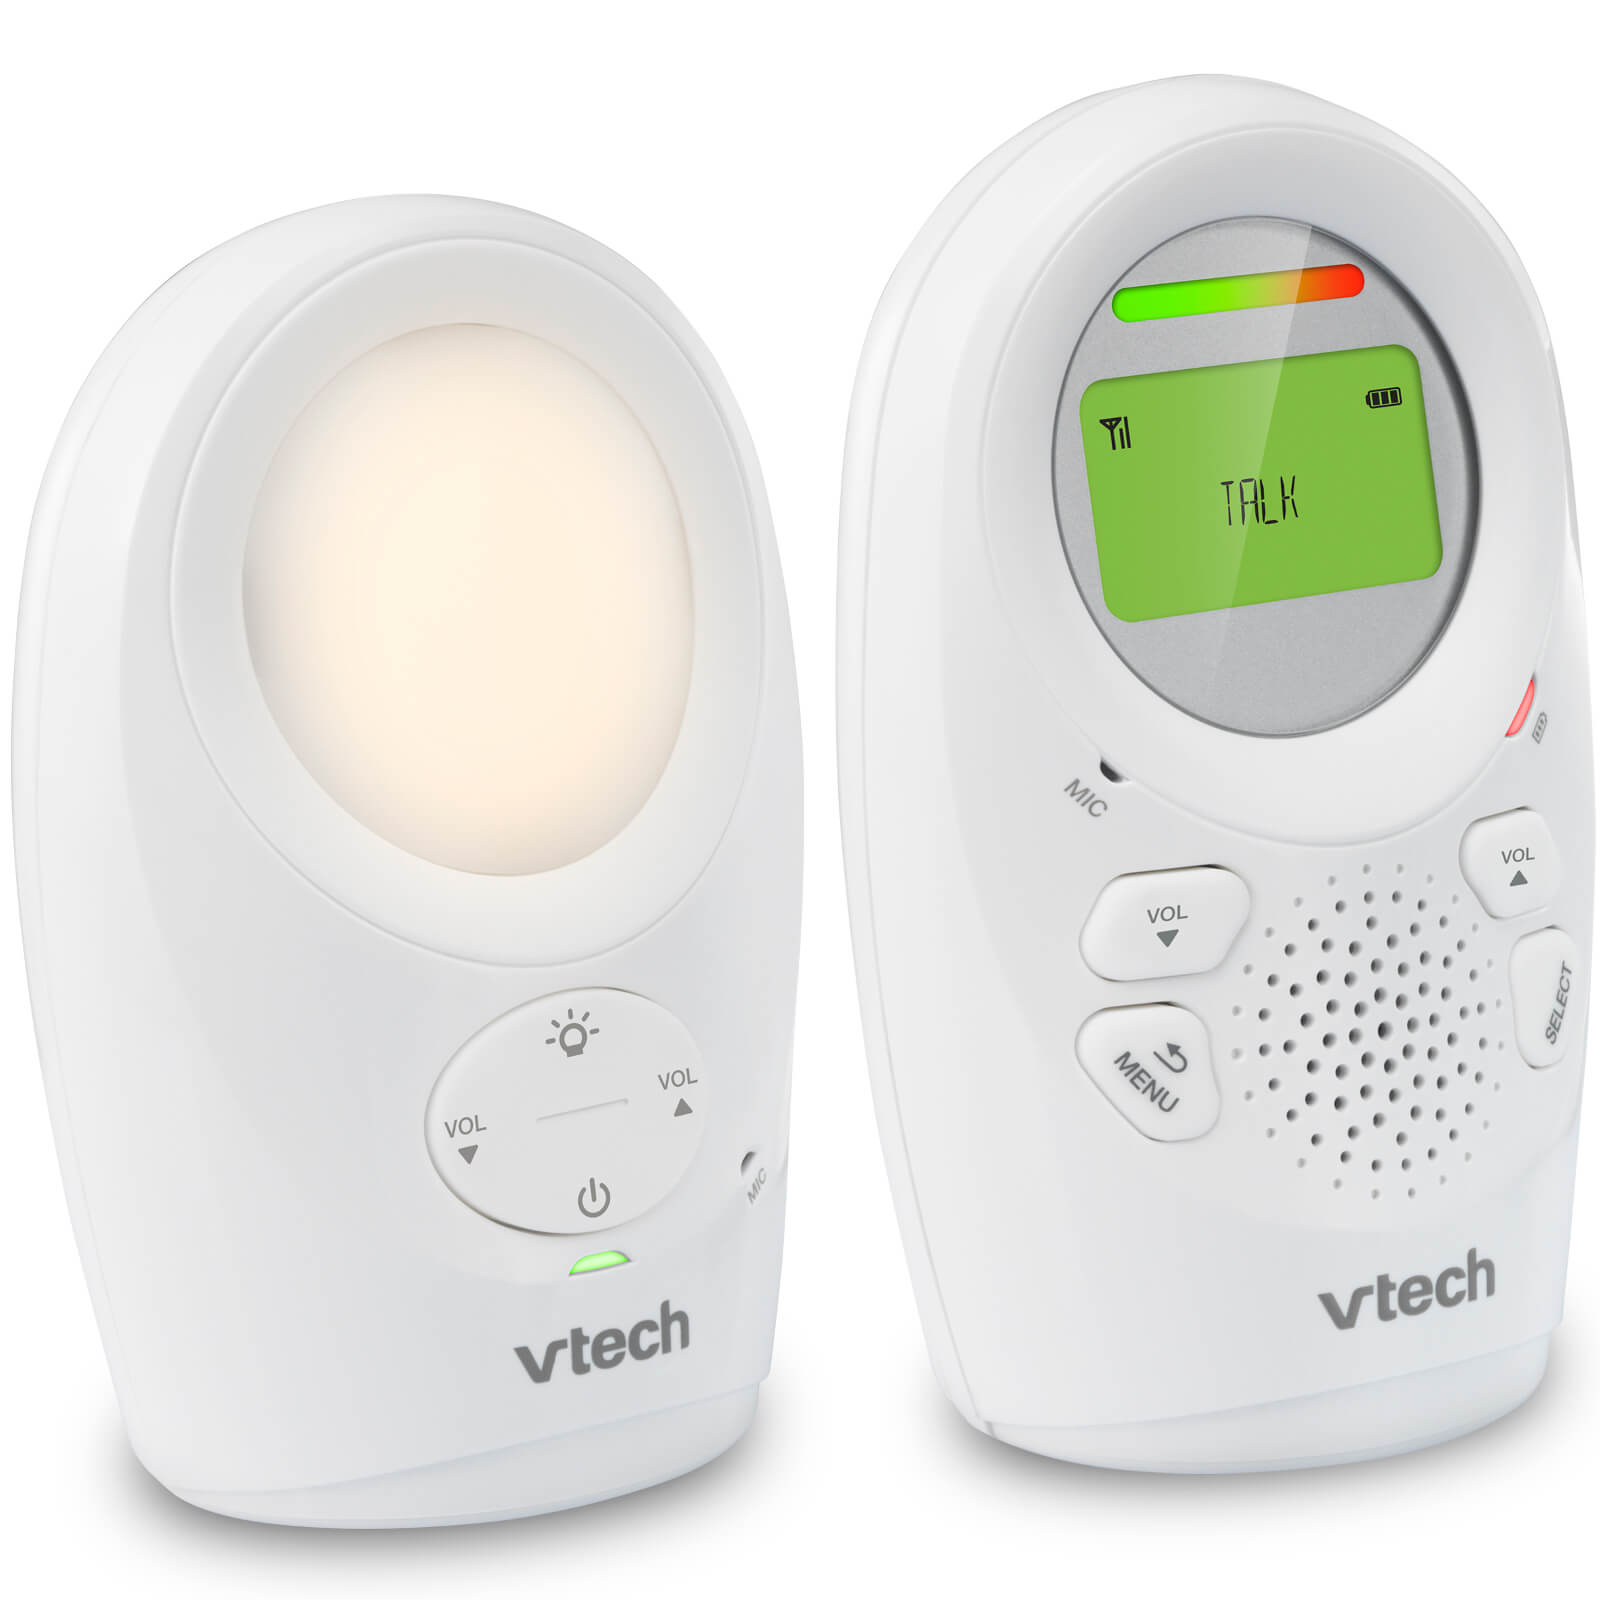 VTech Safe and Sound Digital Audio Monitor with LCD Screen DM1211-Monitor-Vtech-www.hellomom.co.za